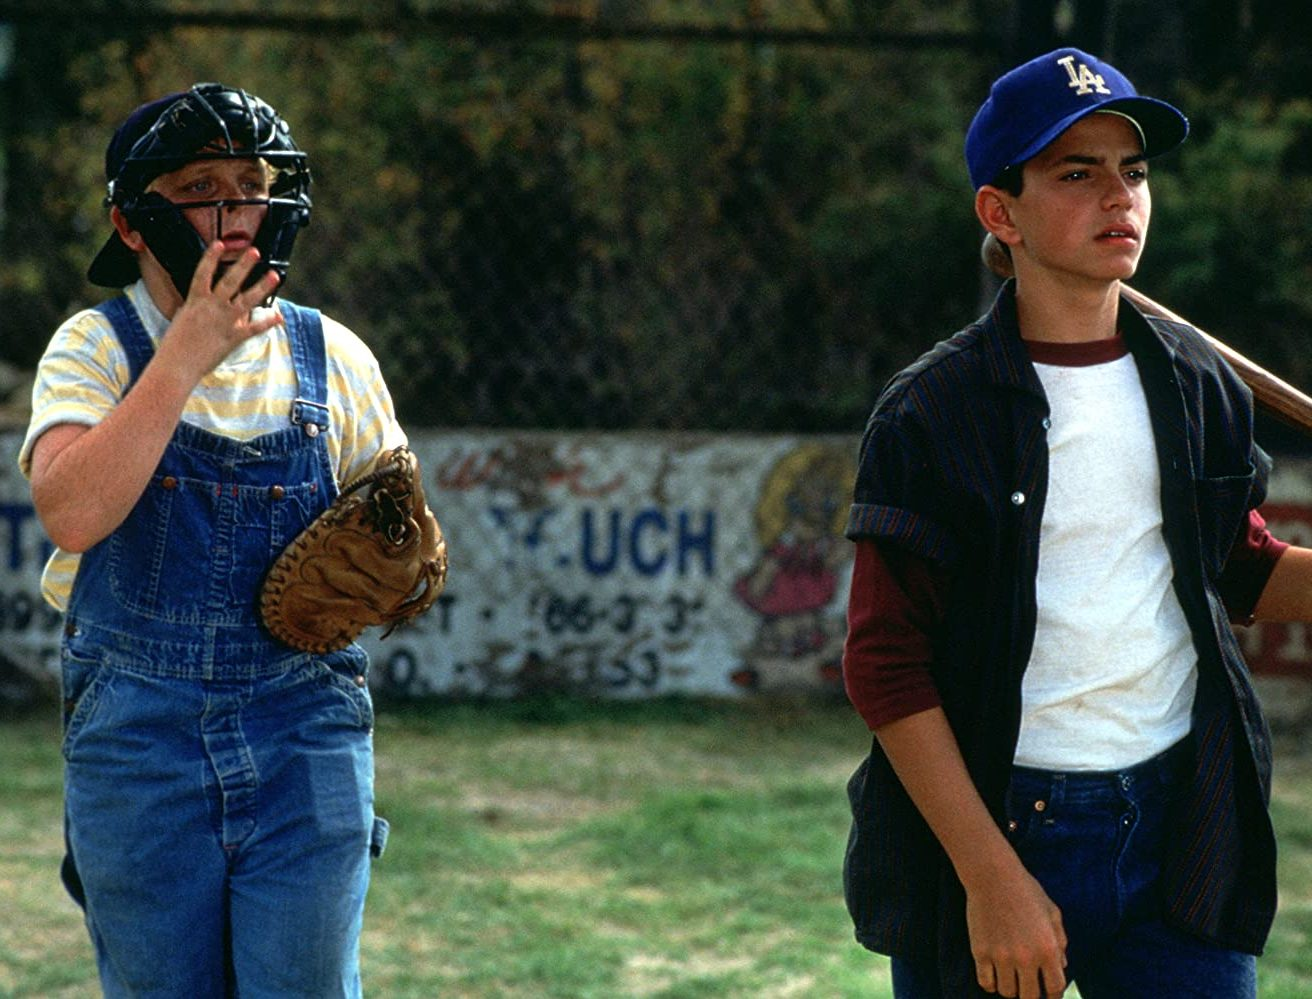 29 2 e1599565781163 20 Home Run-Hitting Facts About The 1993 Film The Sandlot